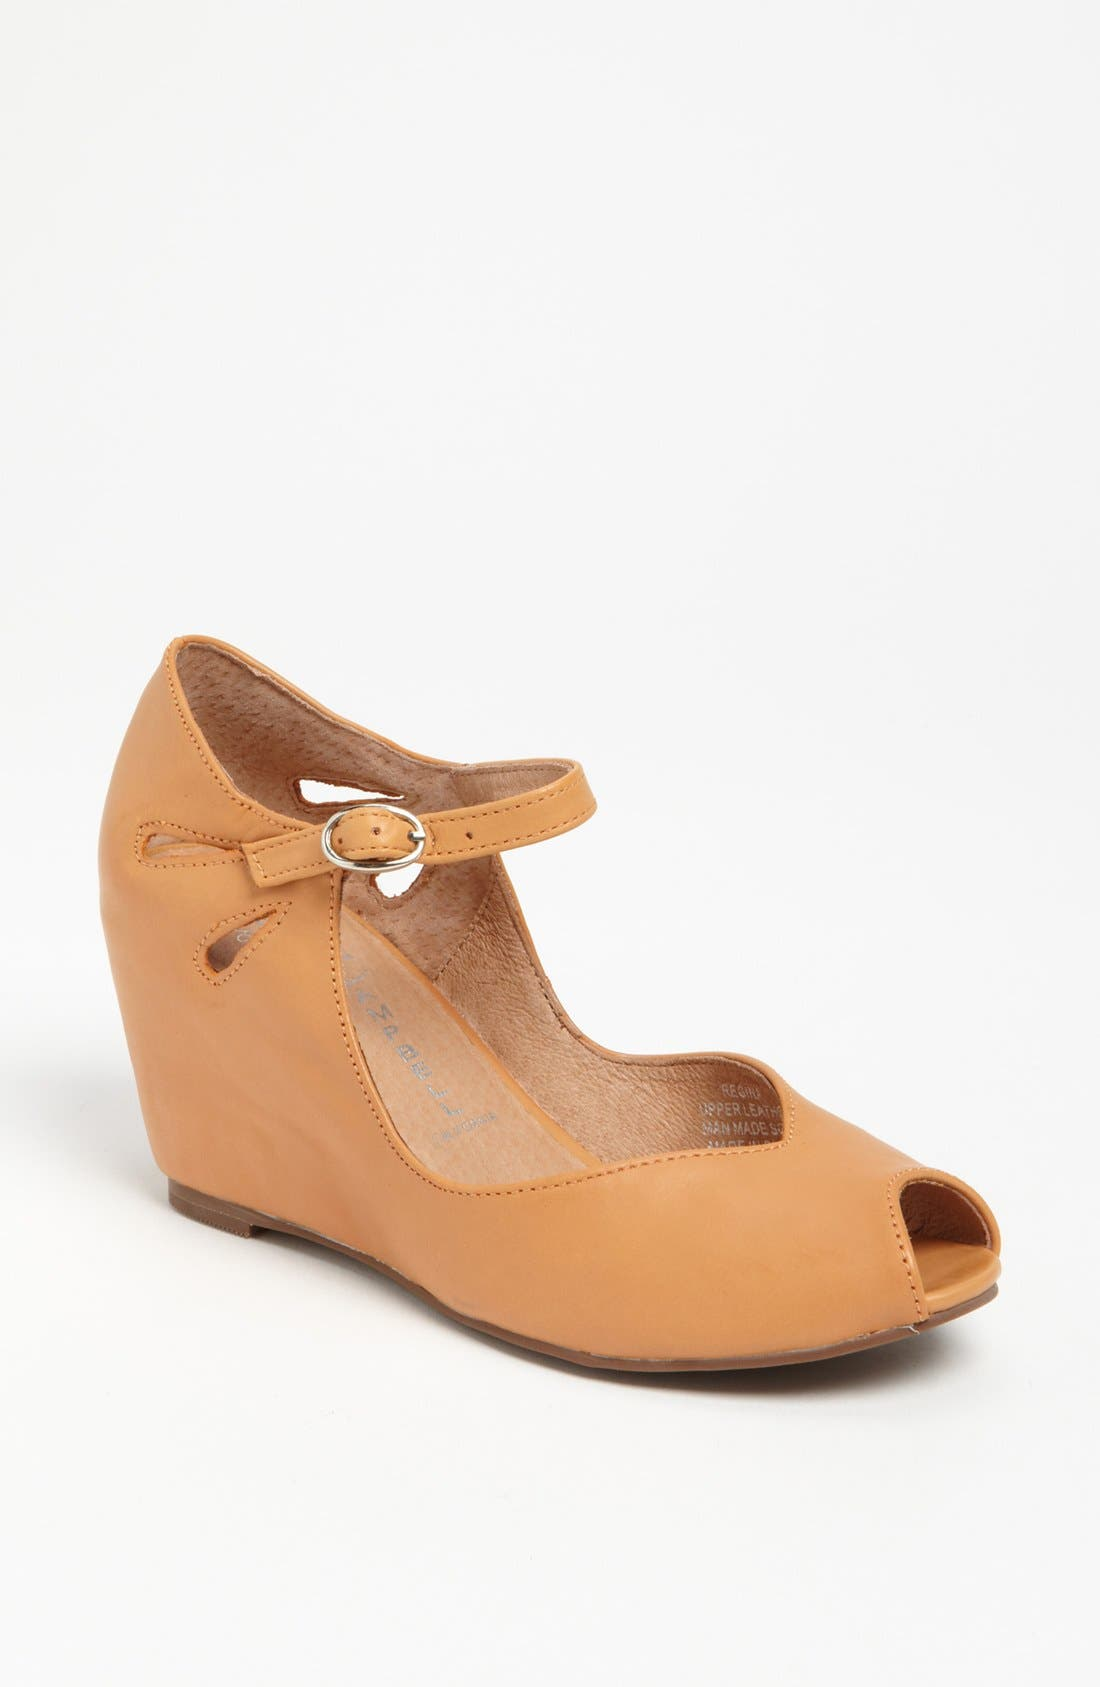 Alternate Image 1 Selected - Jeffrey Campbell 'Regina' Wedge